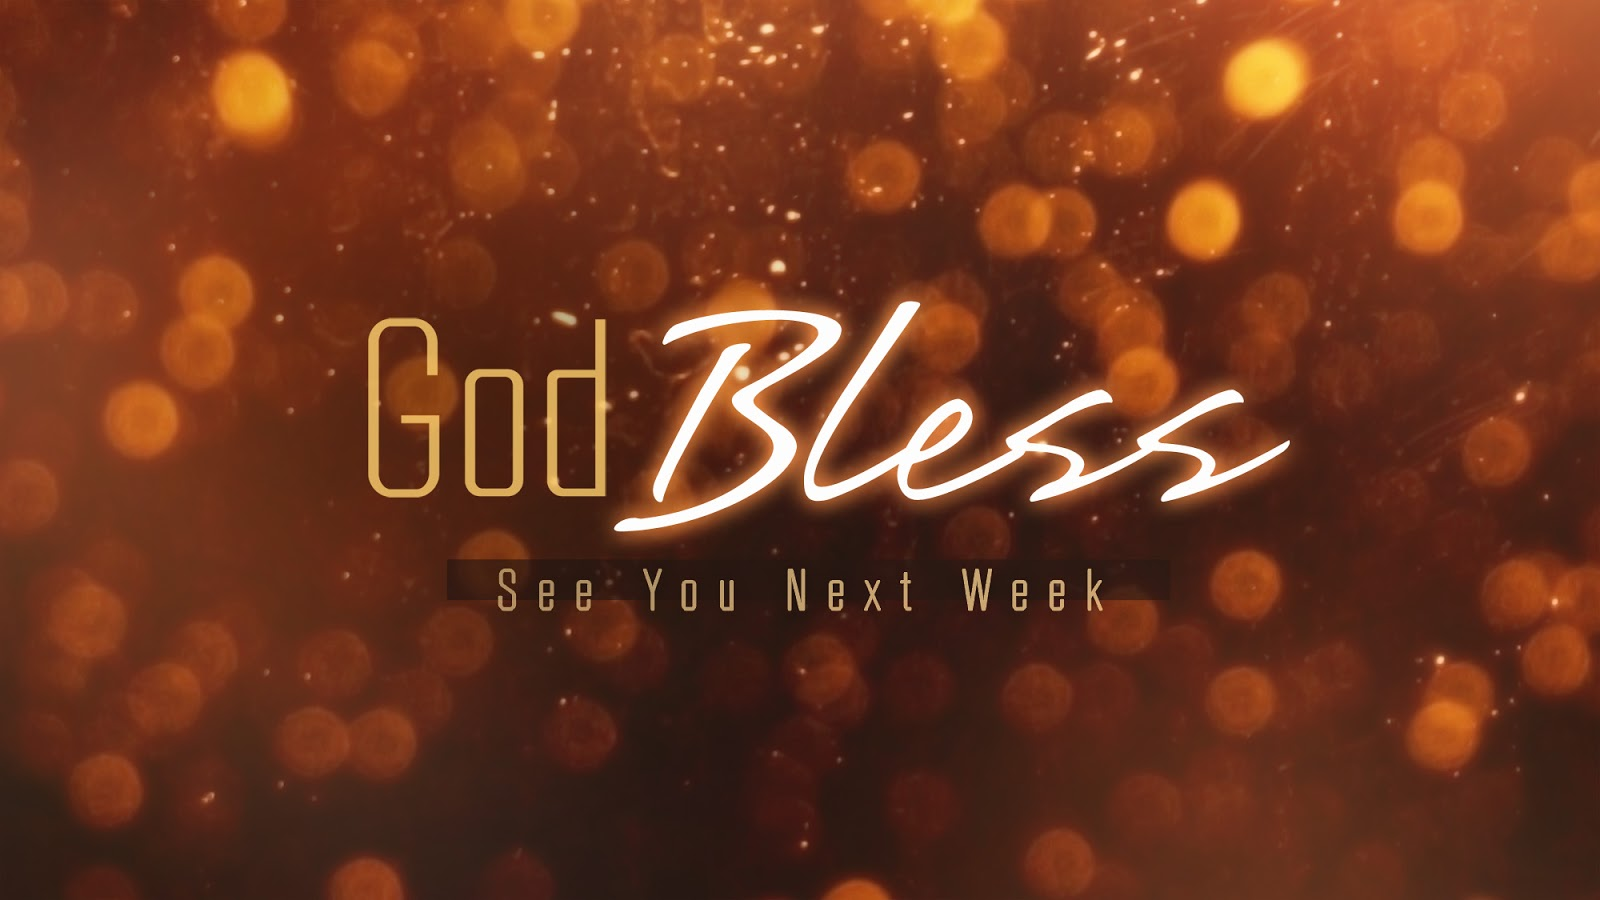 God Bless Have A Great Week Wallpaper PPT Backgrounds